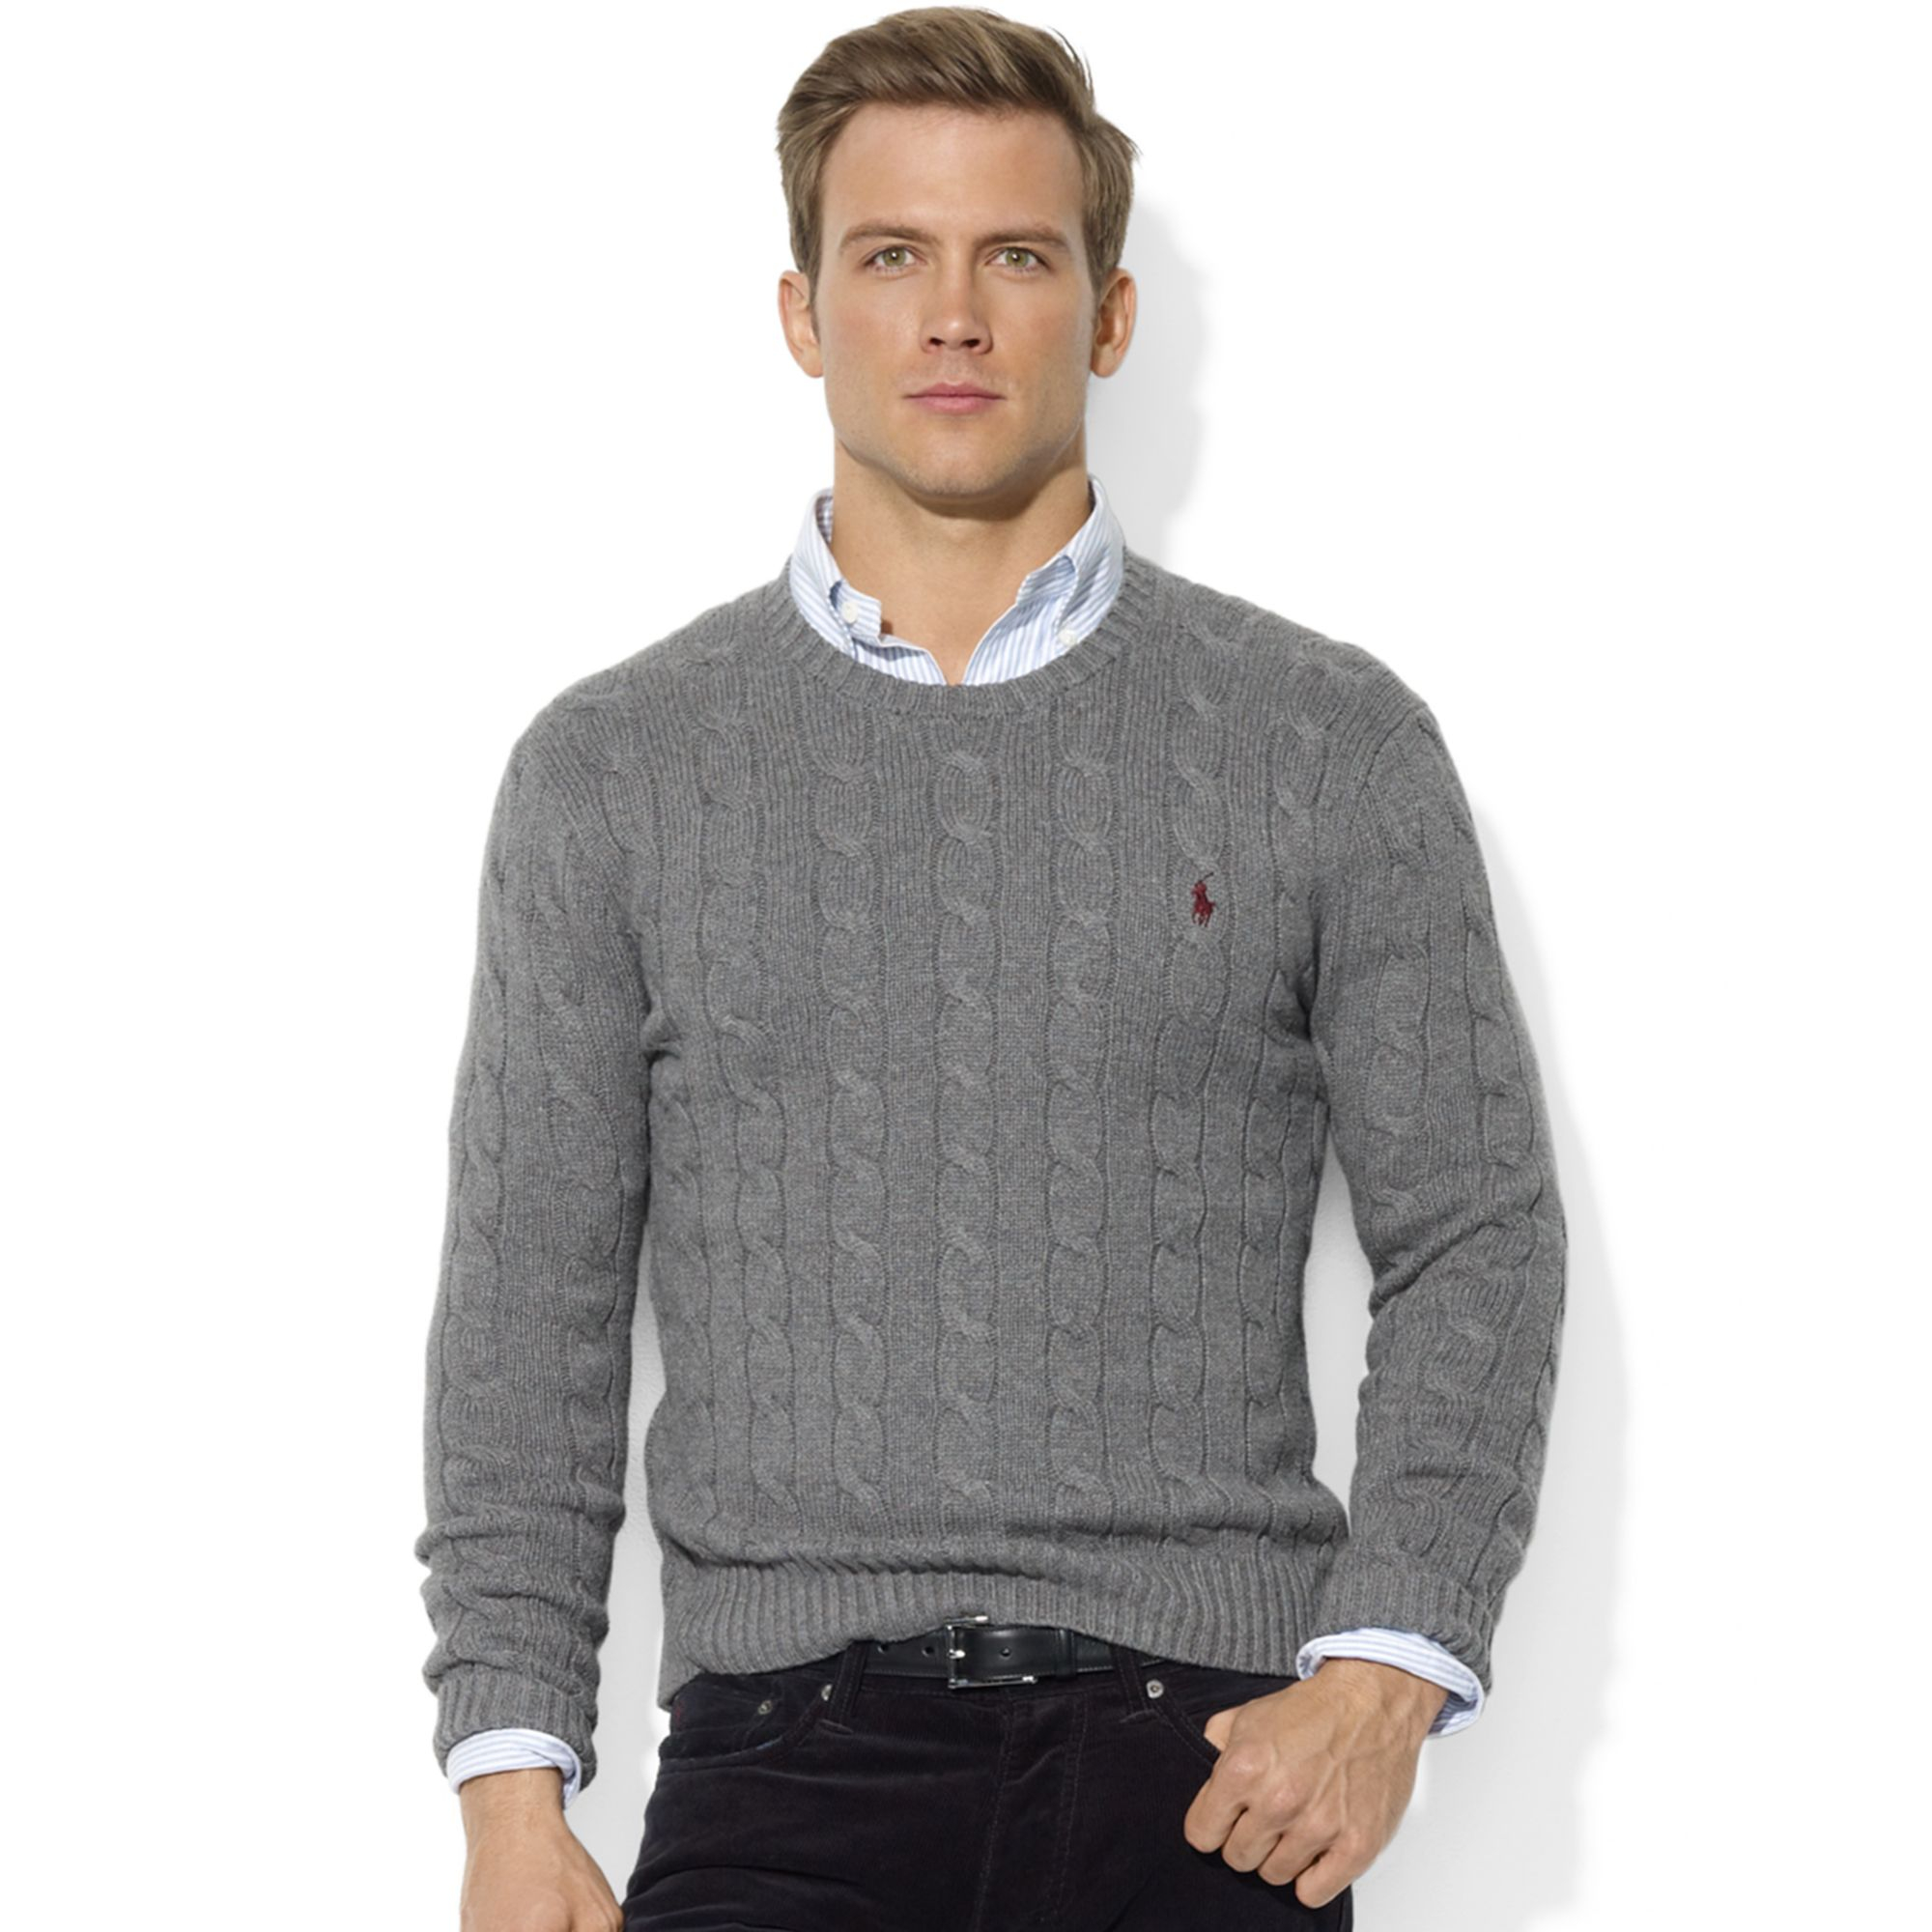 ae7426a8590 authentic sweaters polo ralph lauren macys 28a03 3909e  top quality lyst  ralph lauren roving crew neck cable cotton sweater in gray cde42 3f52a